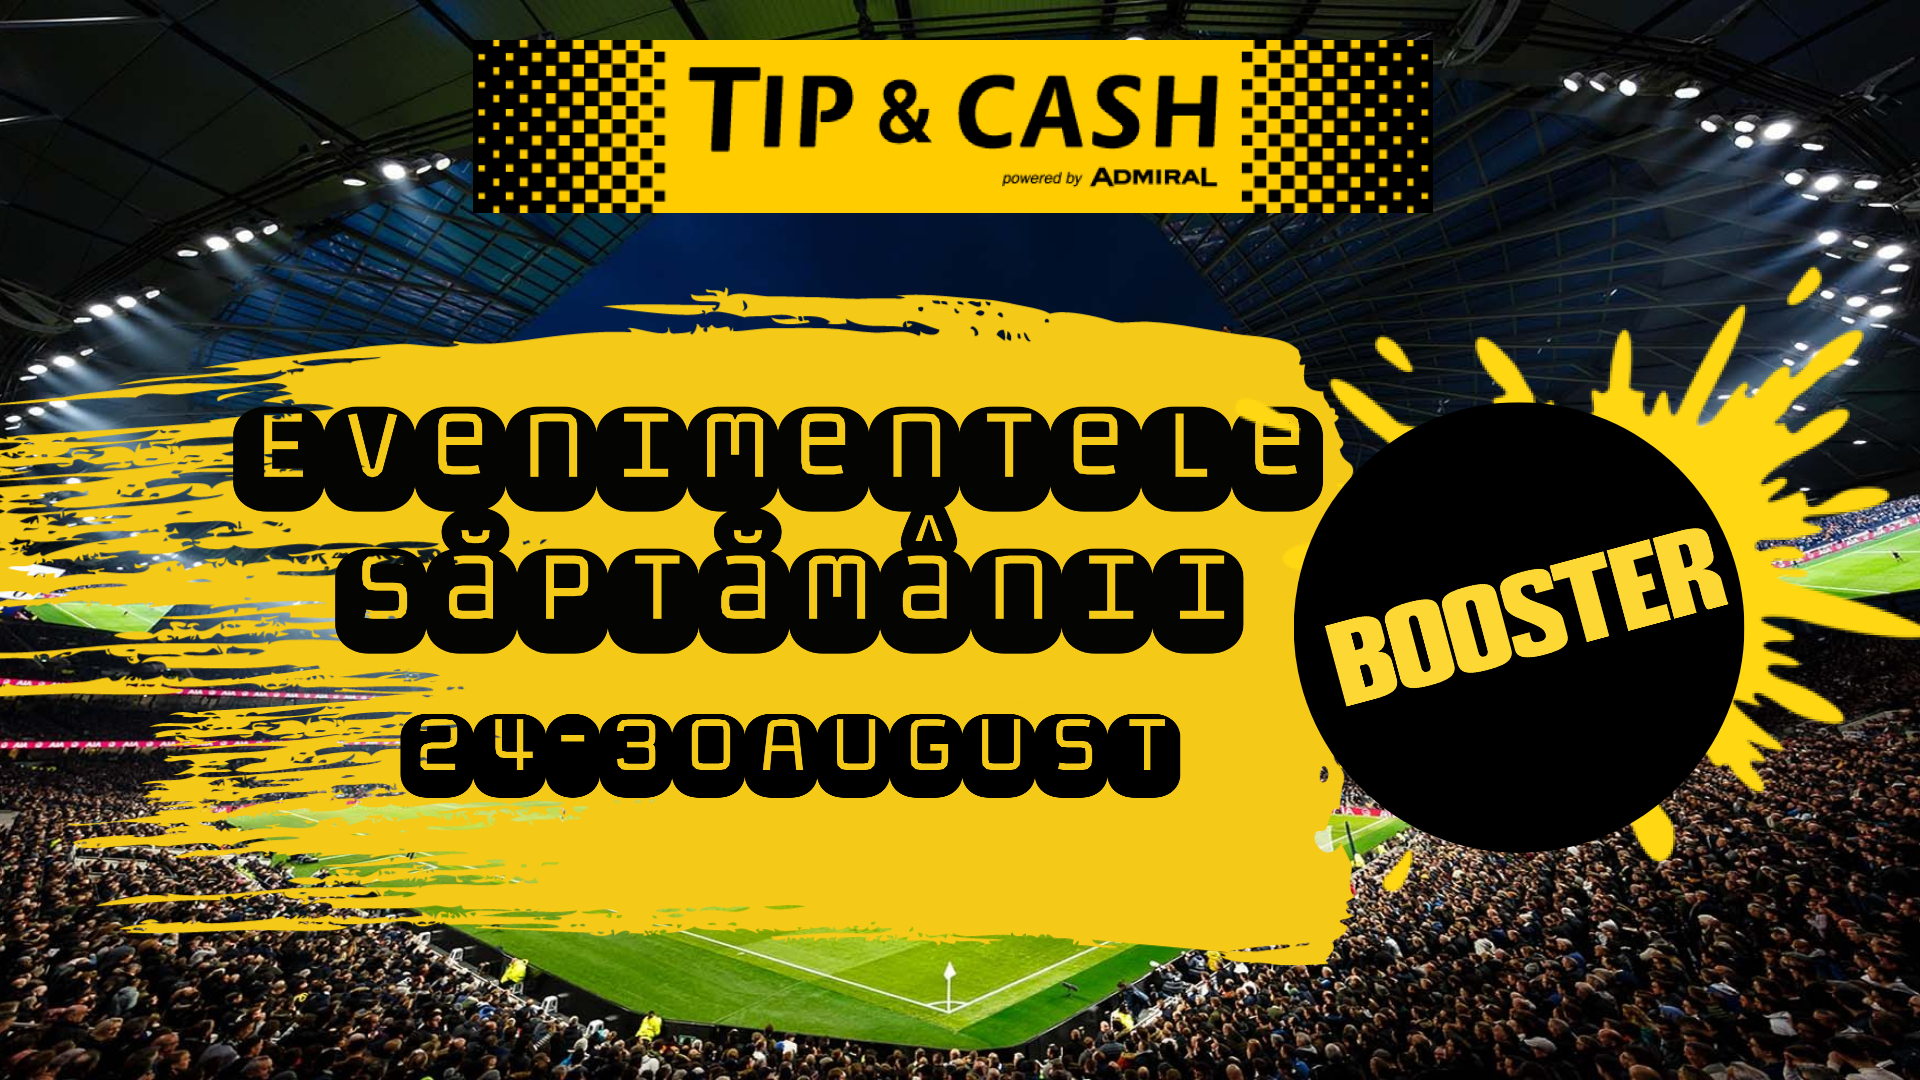 BOOSTER optiune TIP&CASH